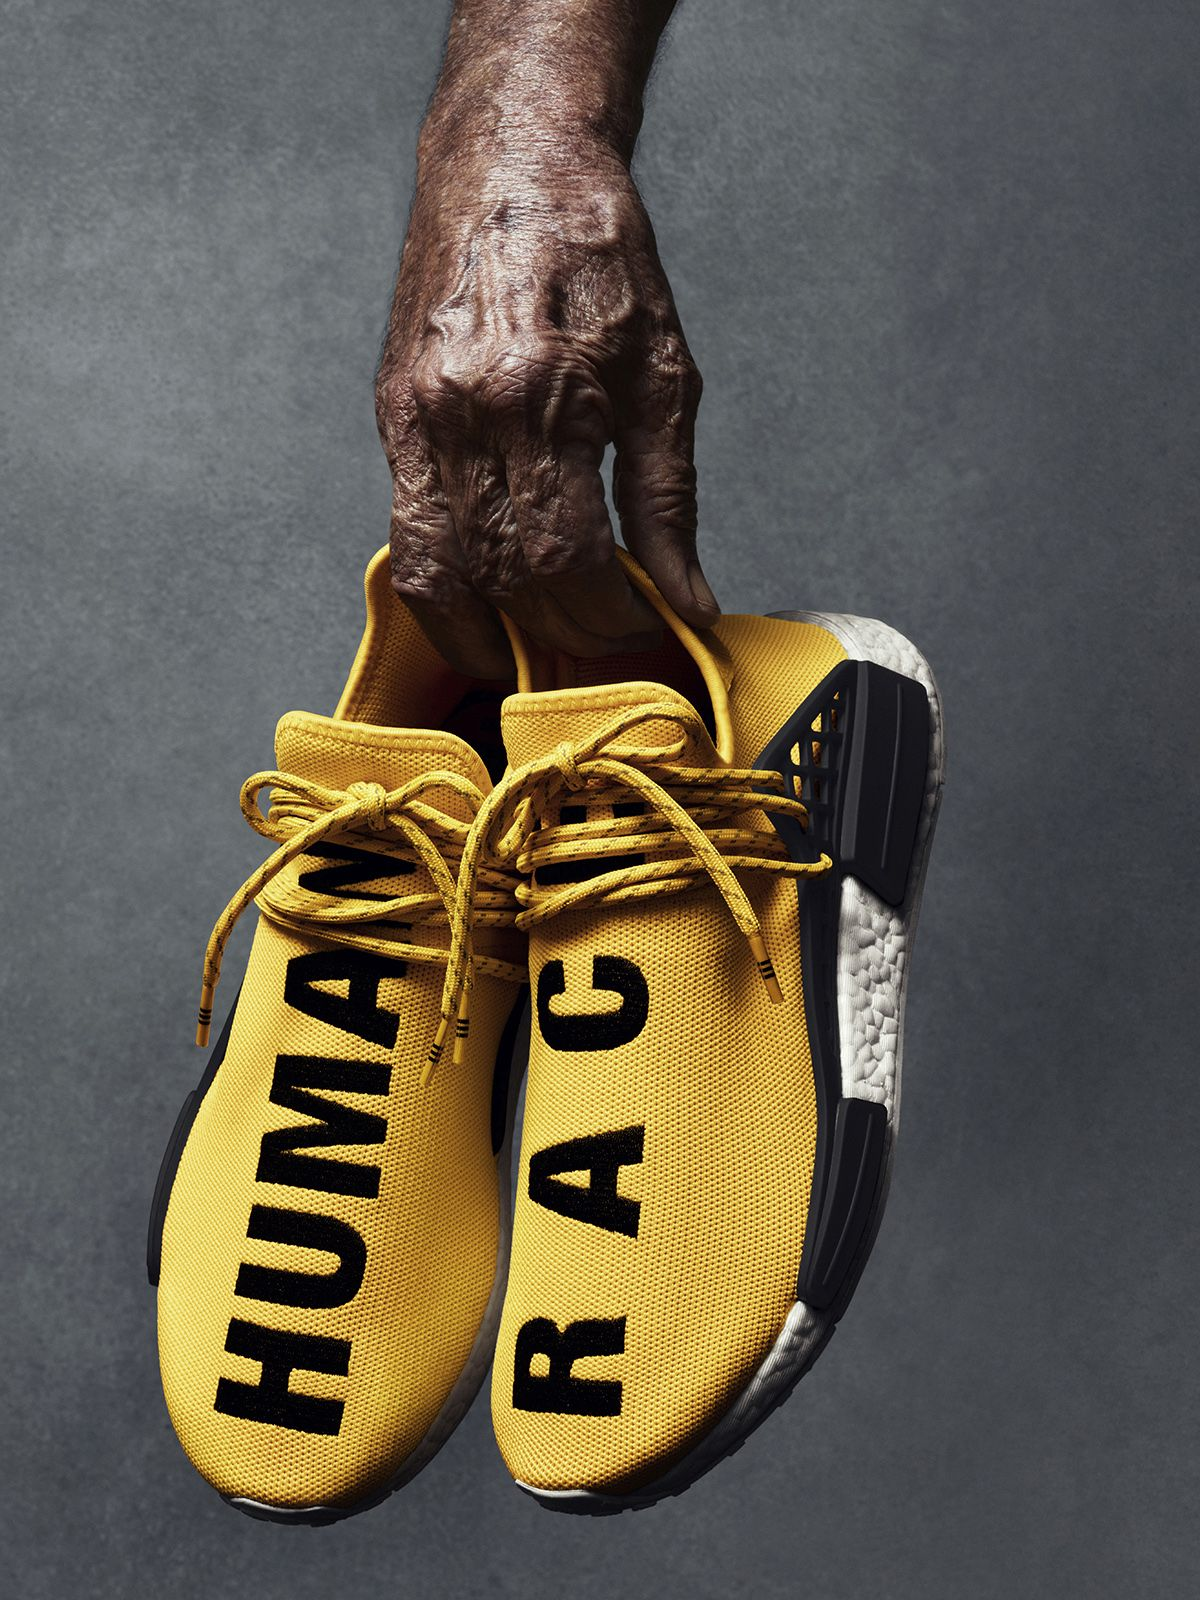 Adidas NMD Human Race Yellow Size US 8 PHARRELL Williams